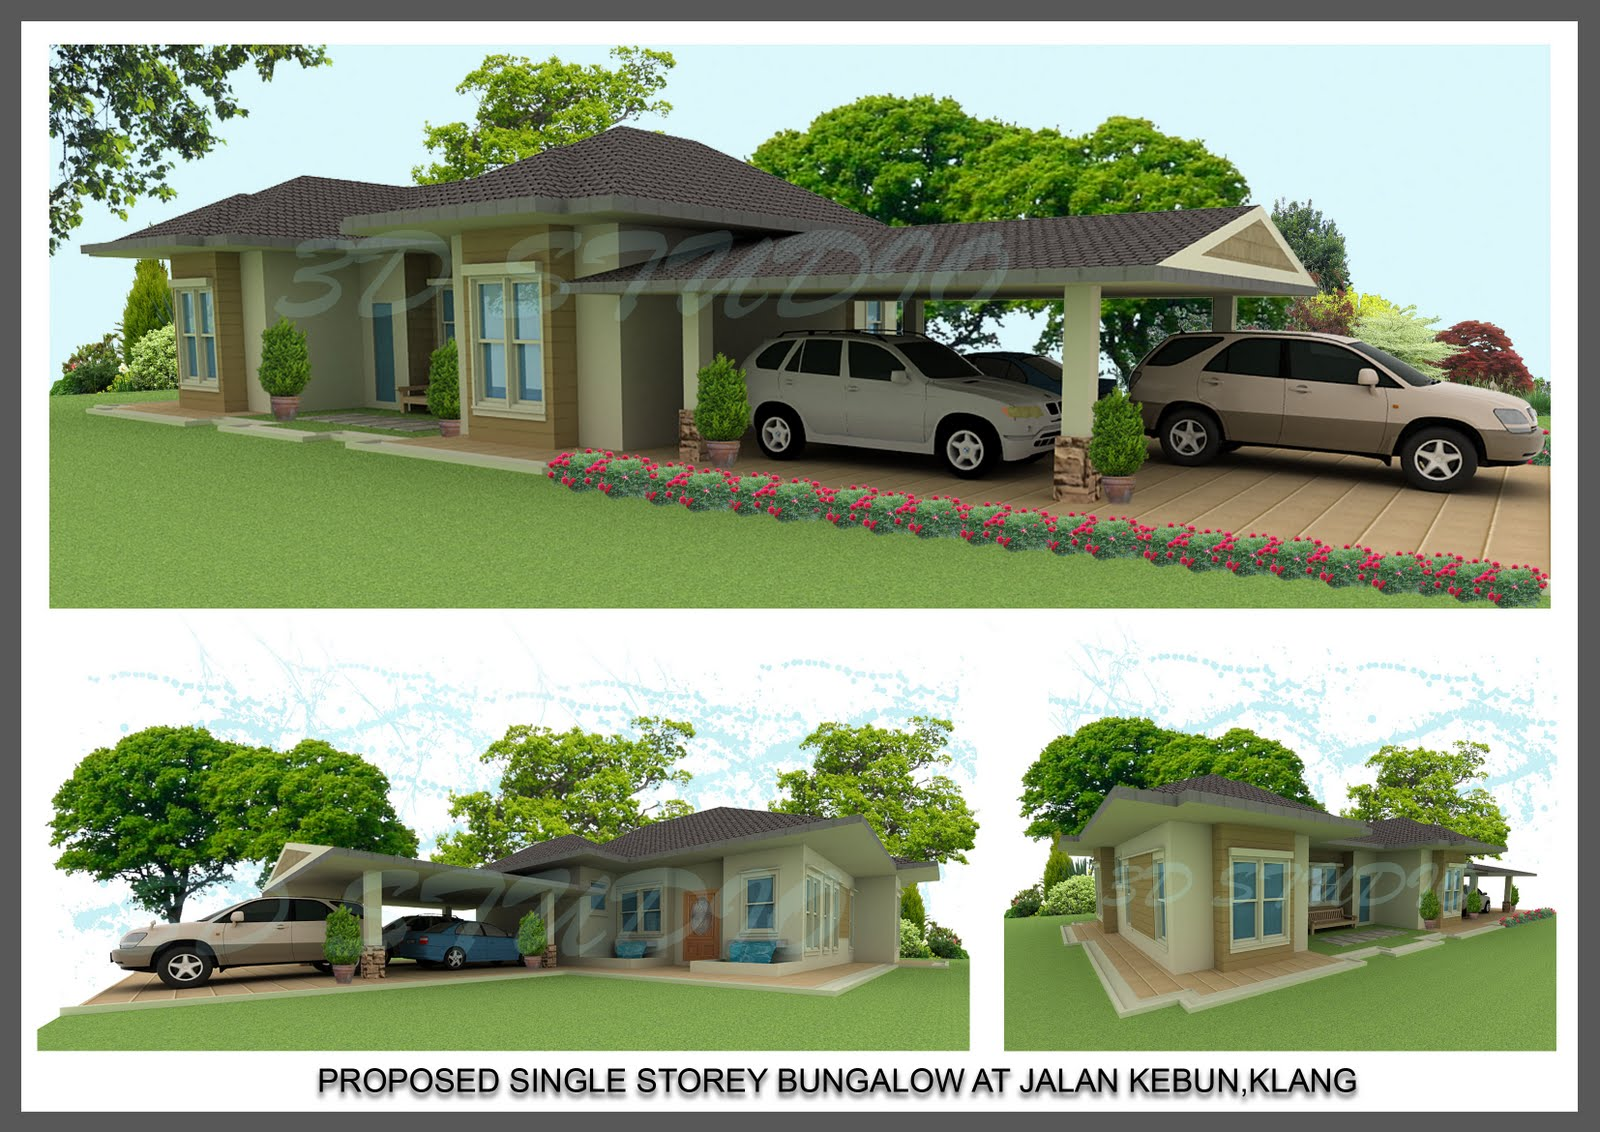 3d s t u d i o new single storey bungalow for Single storey bungalow design